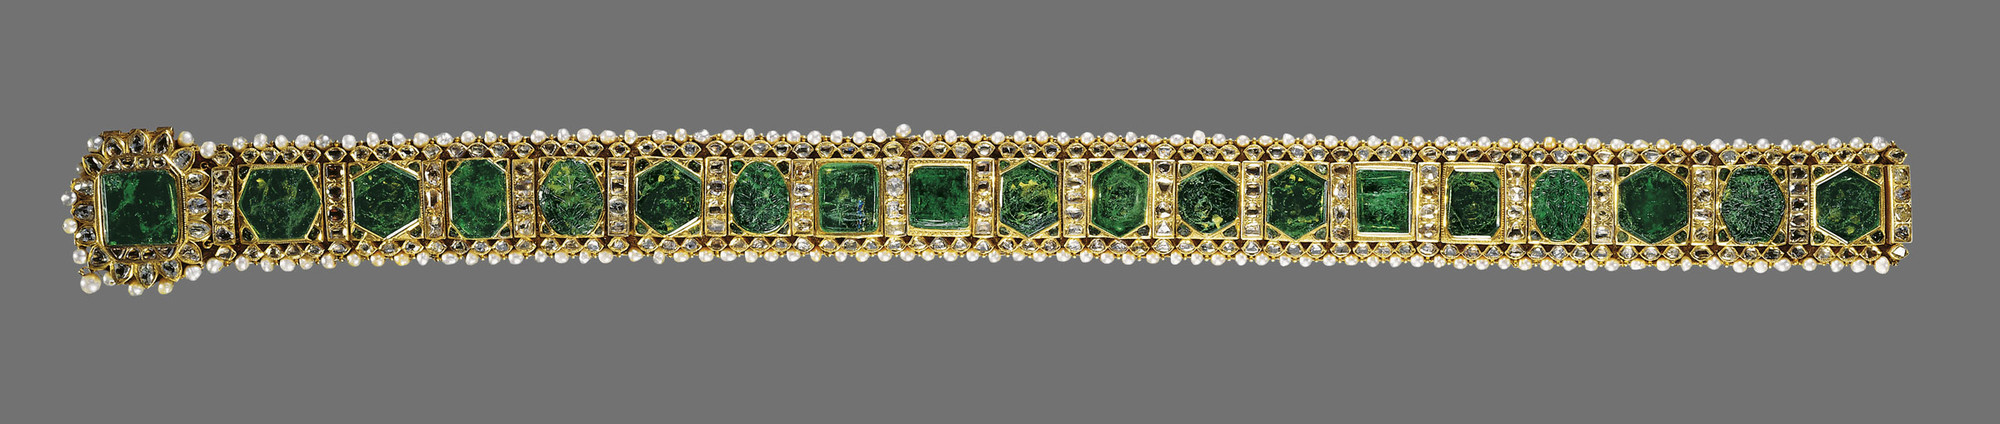 gold girdle or belt with emeralds and pearl embellishments Emerald girdle of Maharaja Sher Singh